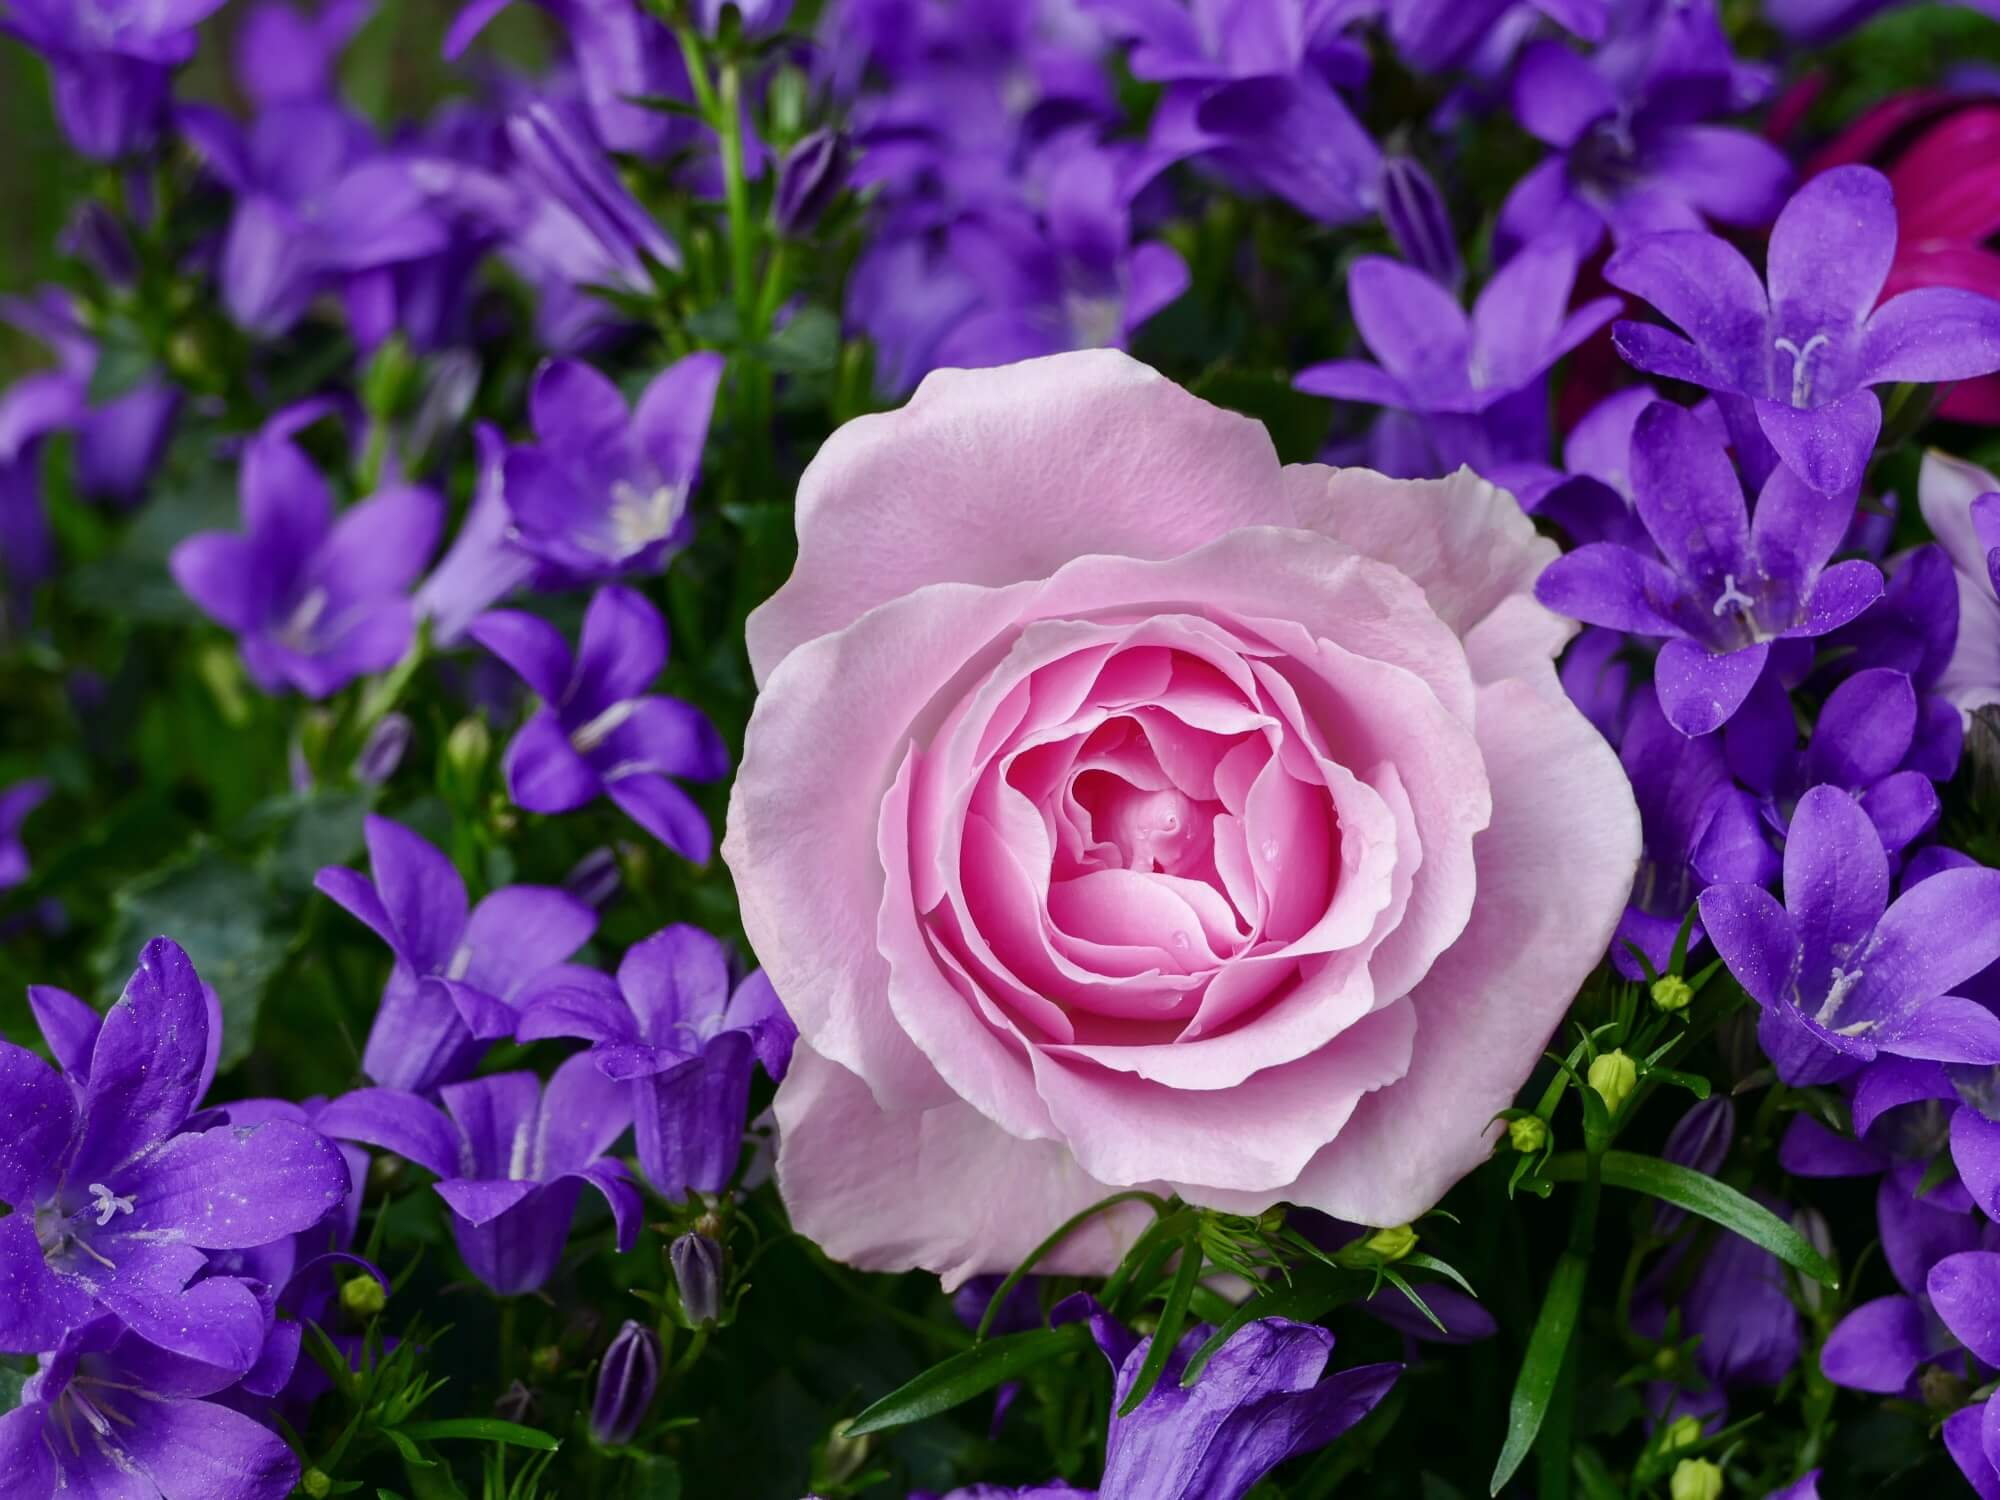 Image of Pink Rose with purple flowers in the background